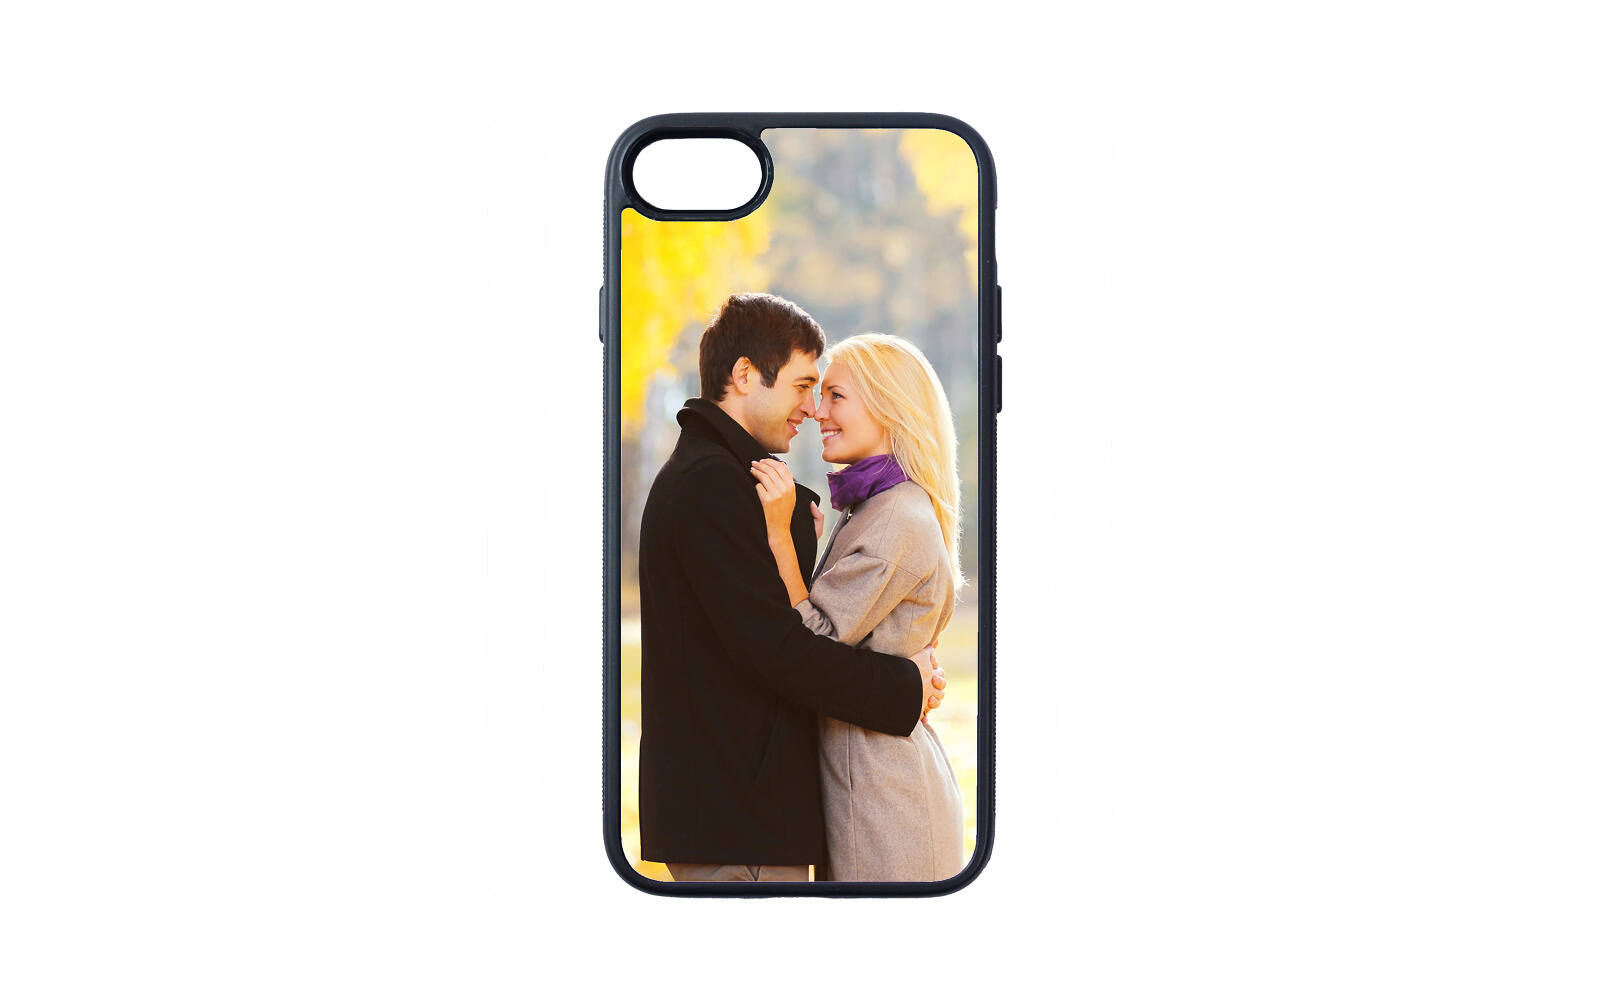 getting photos off iphone custom iphone cases customize phone cases collage 1902